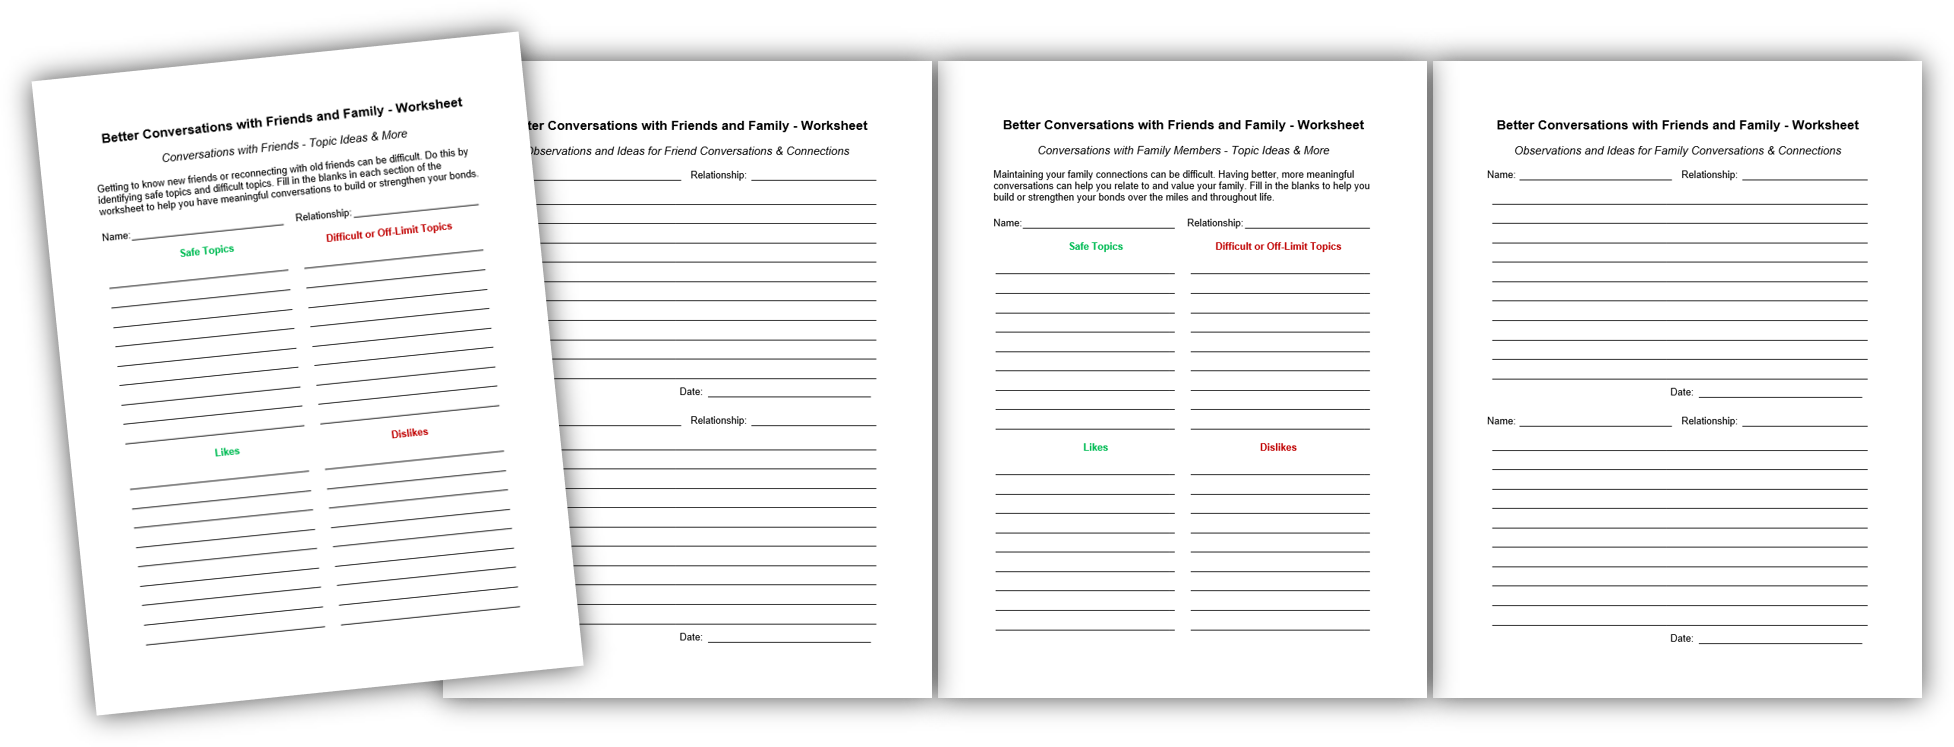 Better Conversations with Friends Worksheet